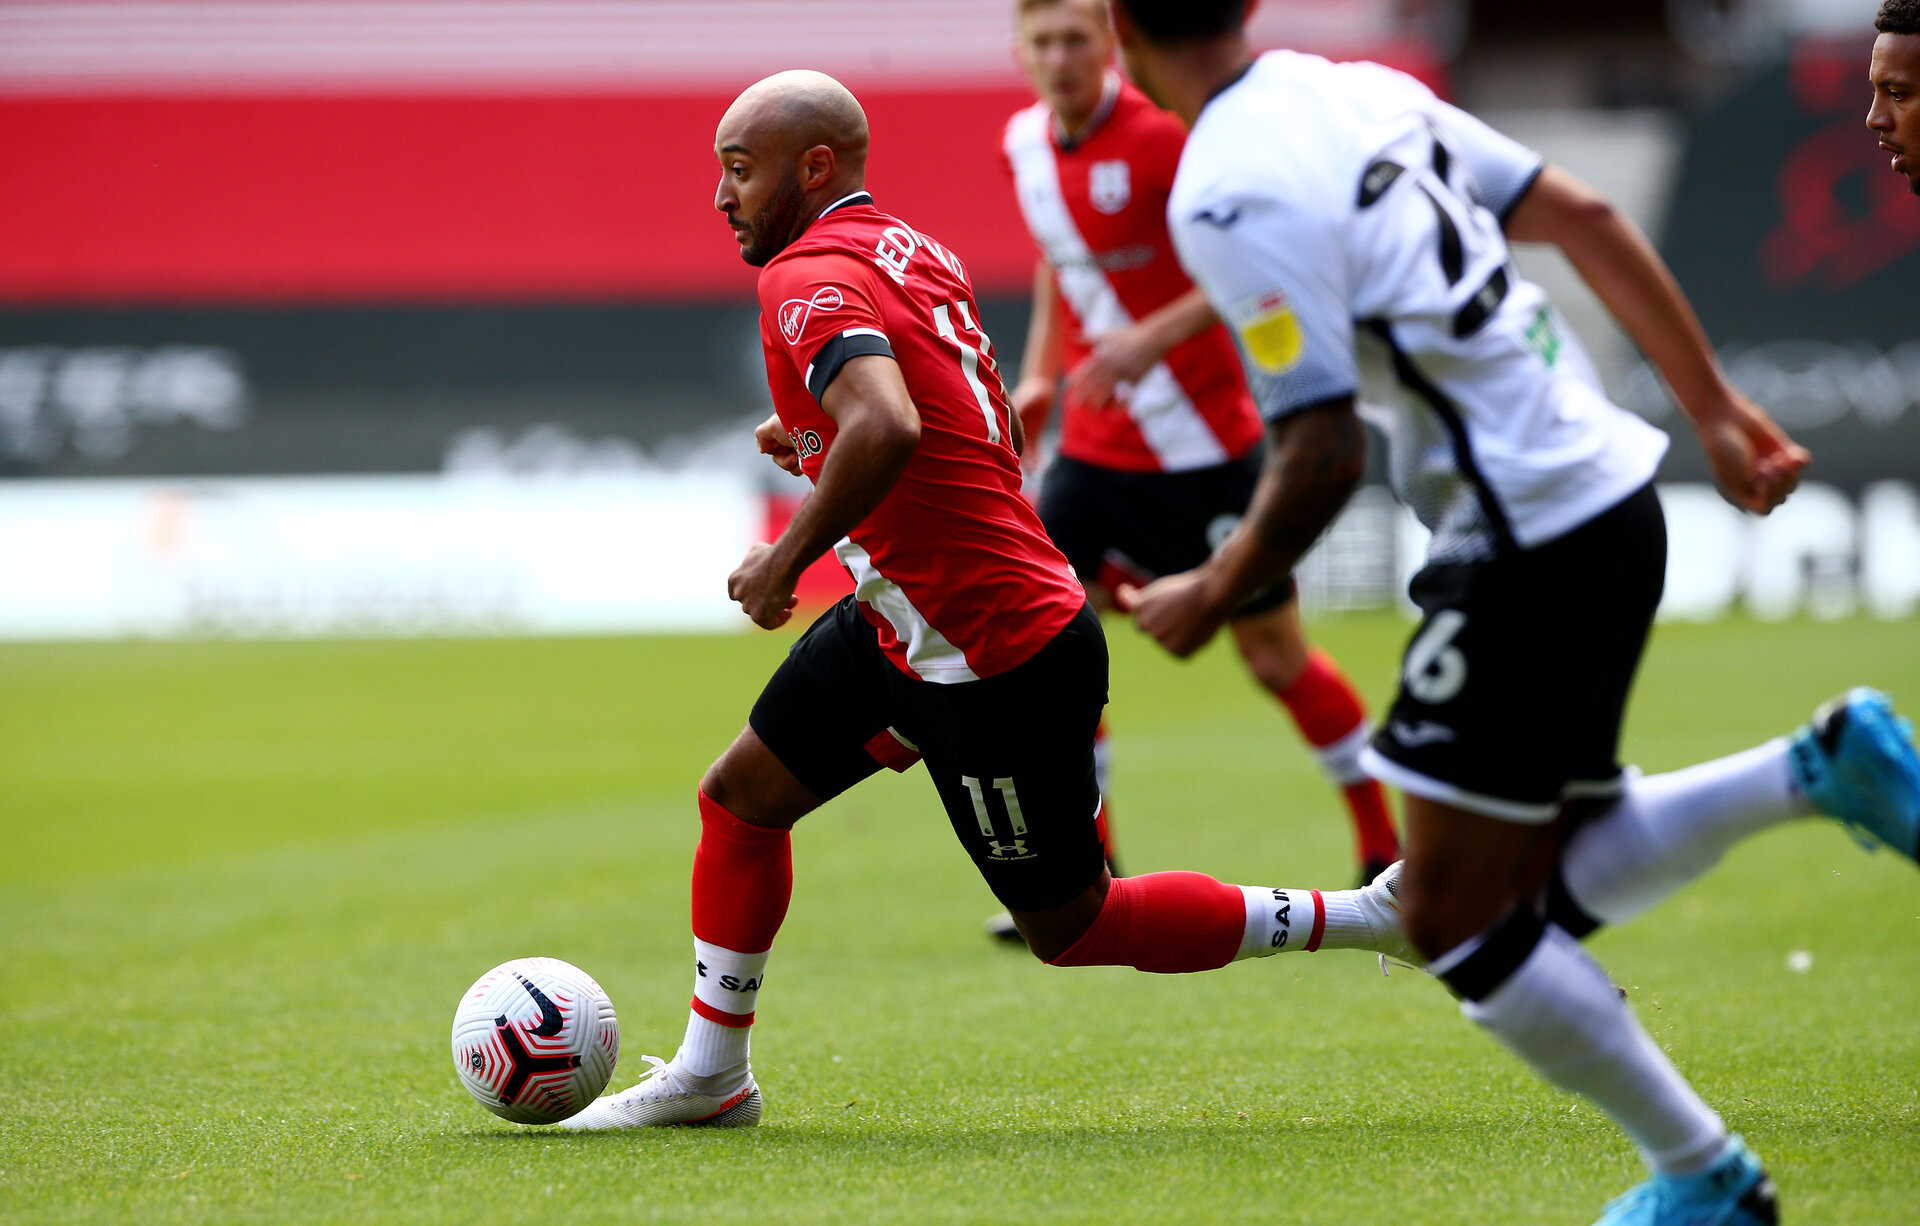 SOUTHAMPTON, ENGLAND - AUGUST 29: Nathan Redmond during a pre-season friendly between Southampton FC and Swansea City at St Marys Stadium, on August 29, 2020 in Southampton, England. (Photo by Matt Watson/Southampton FC via Getty Images)